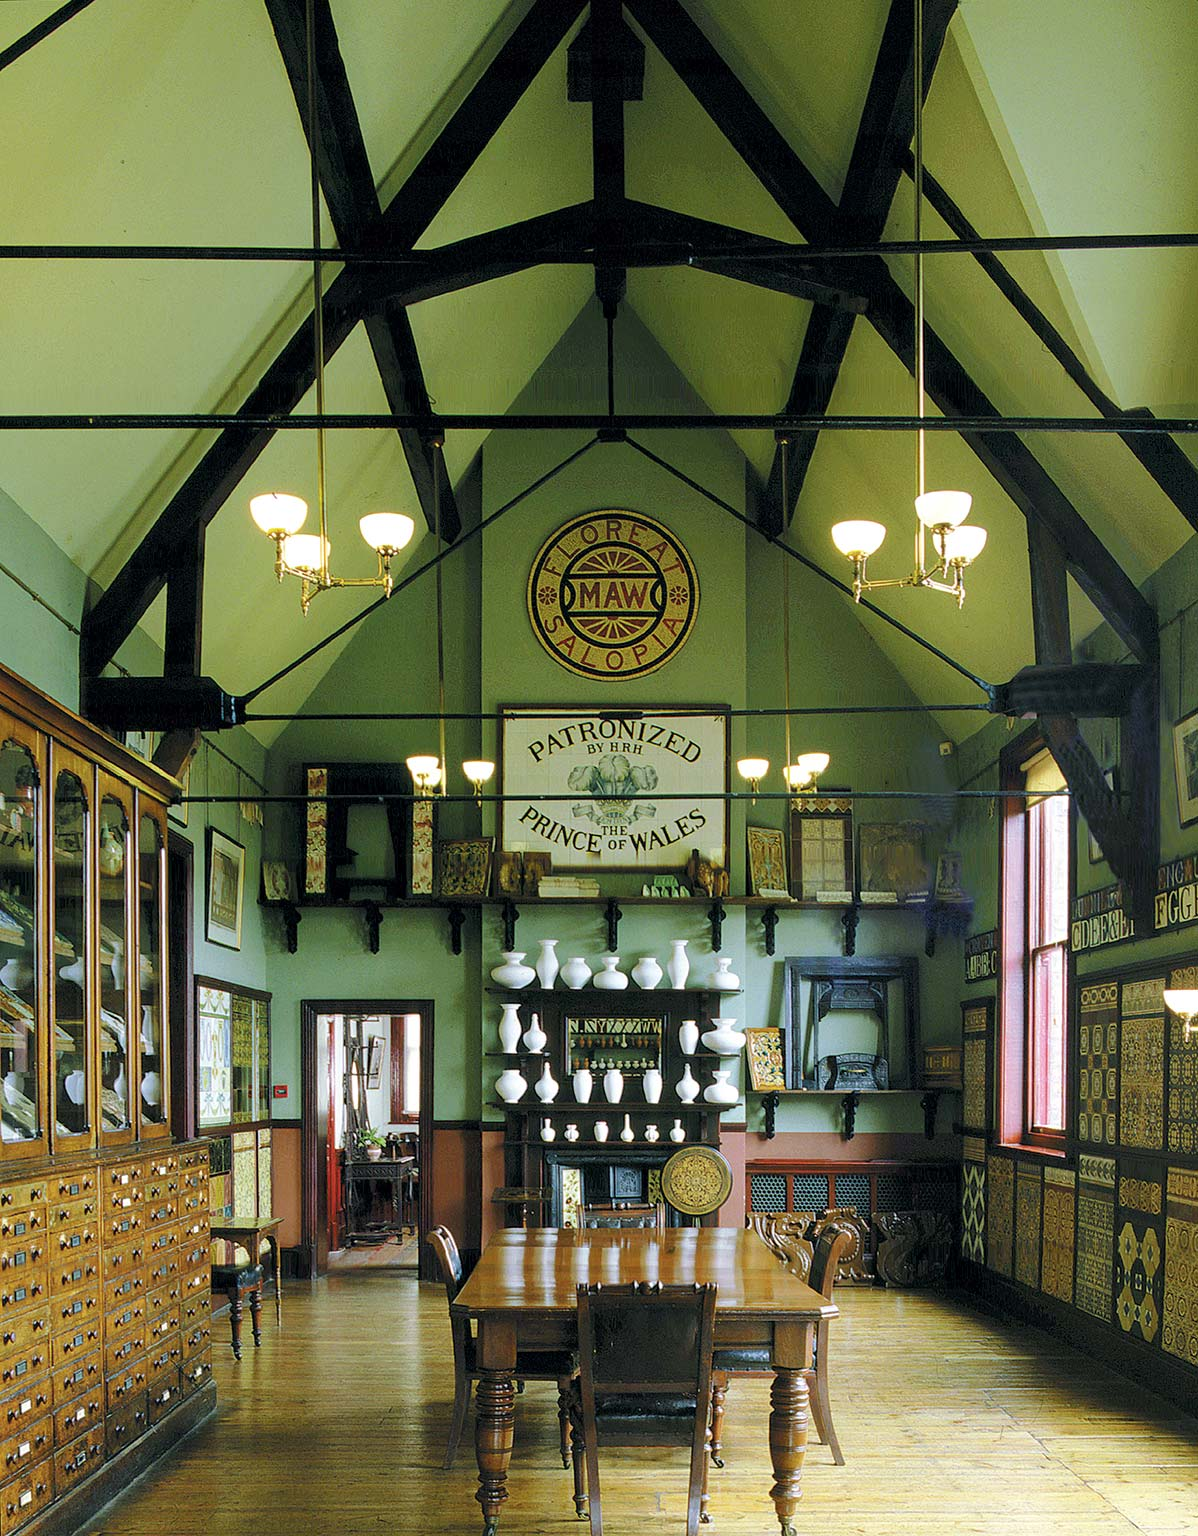 4. Jackfield Tile Museum, free with National Art Pass -